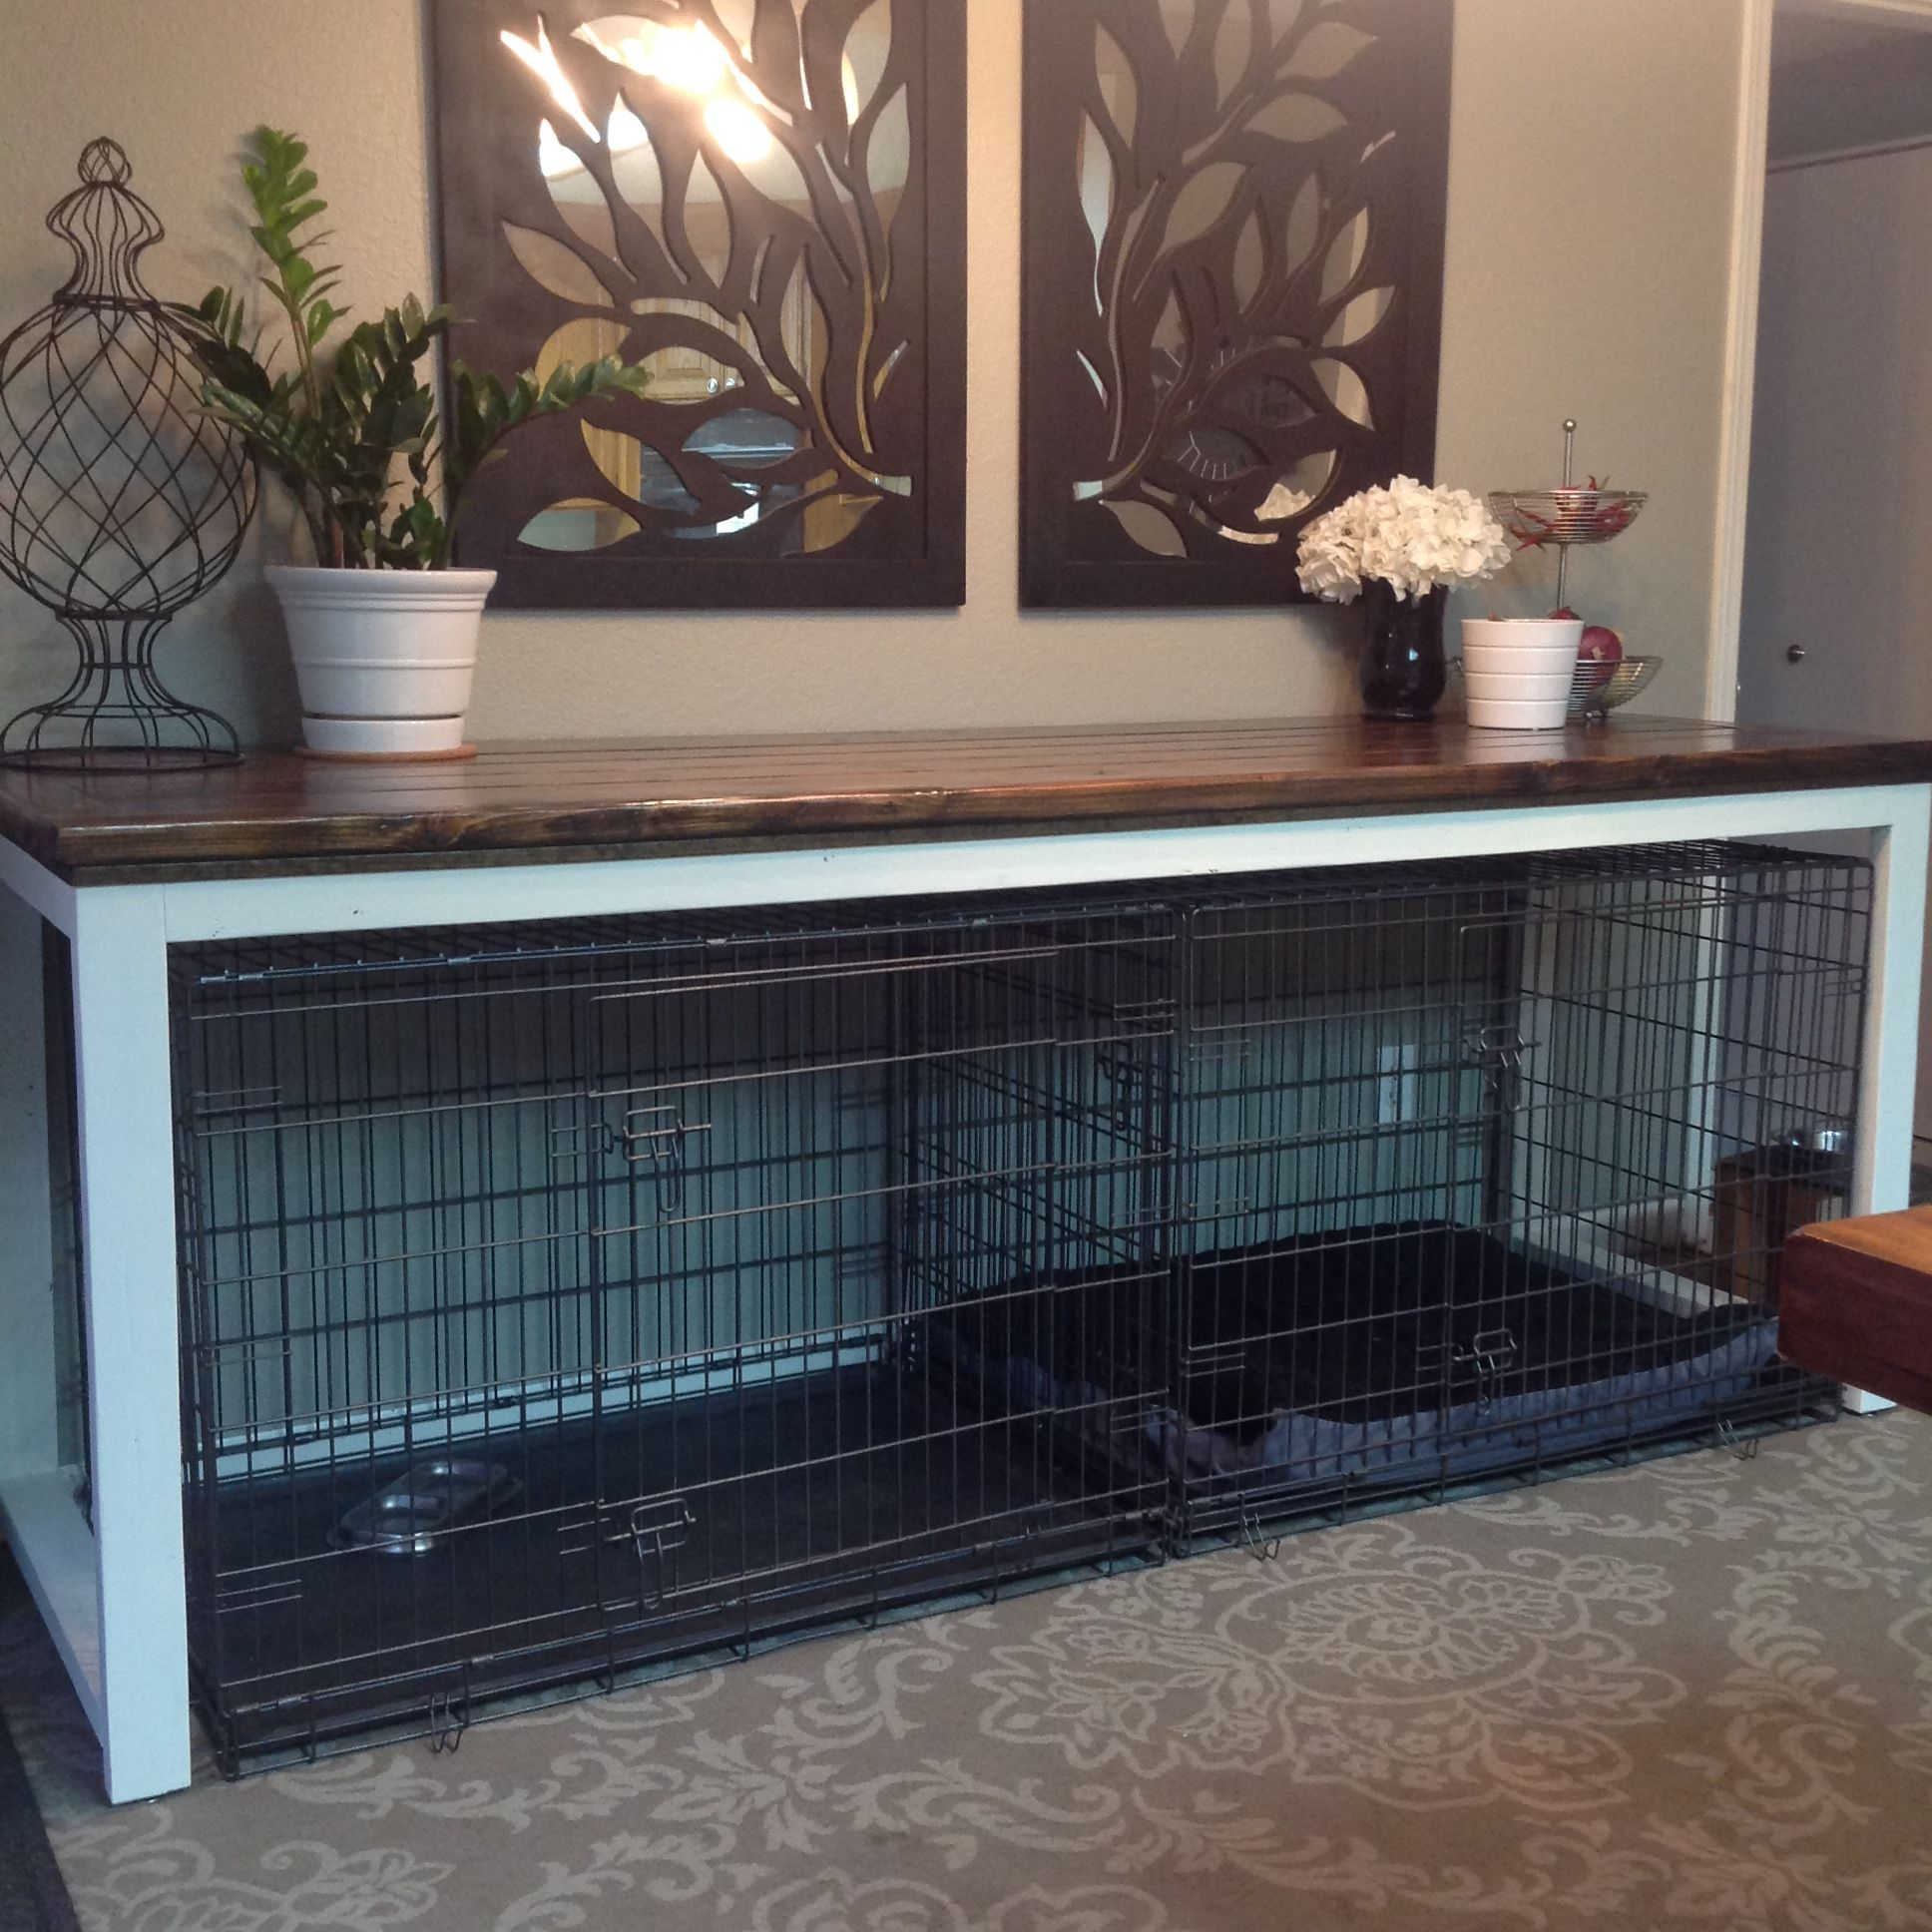 Creating A Table To Go Over The Top Of Your Dog Crates